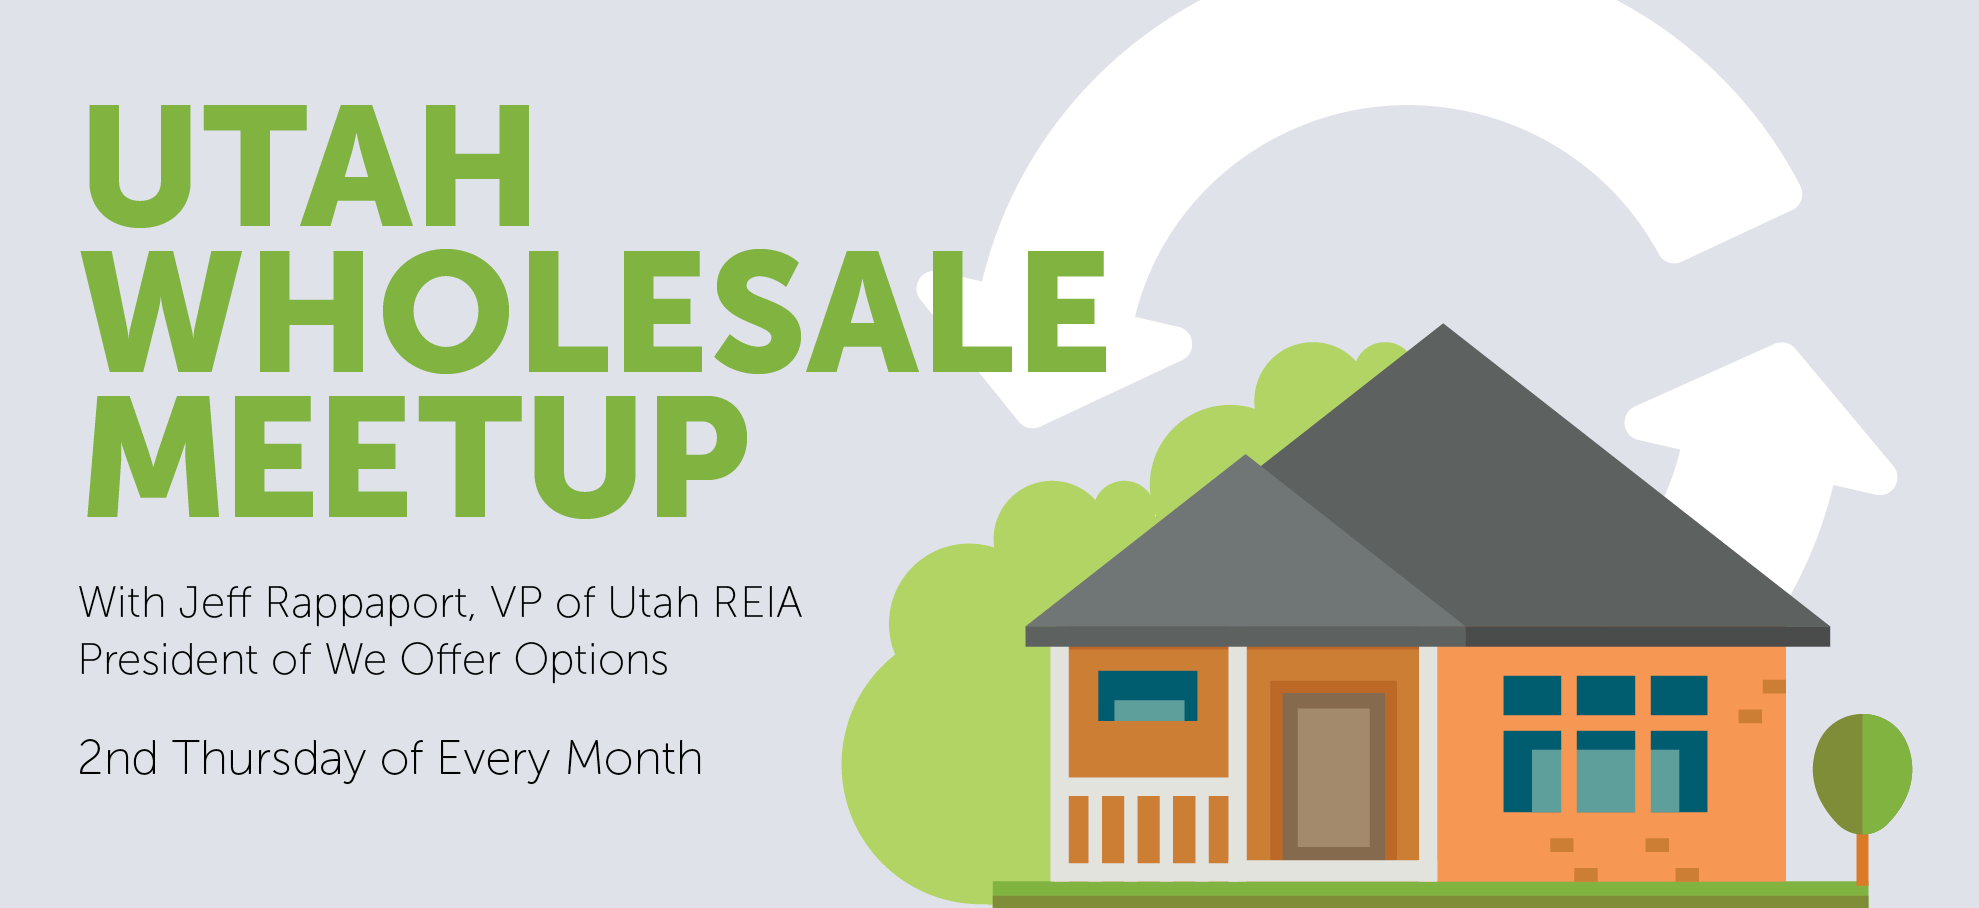 Utah REIA - Learn, Network, Succeed